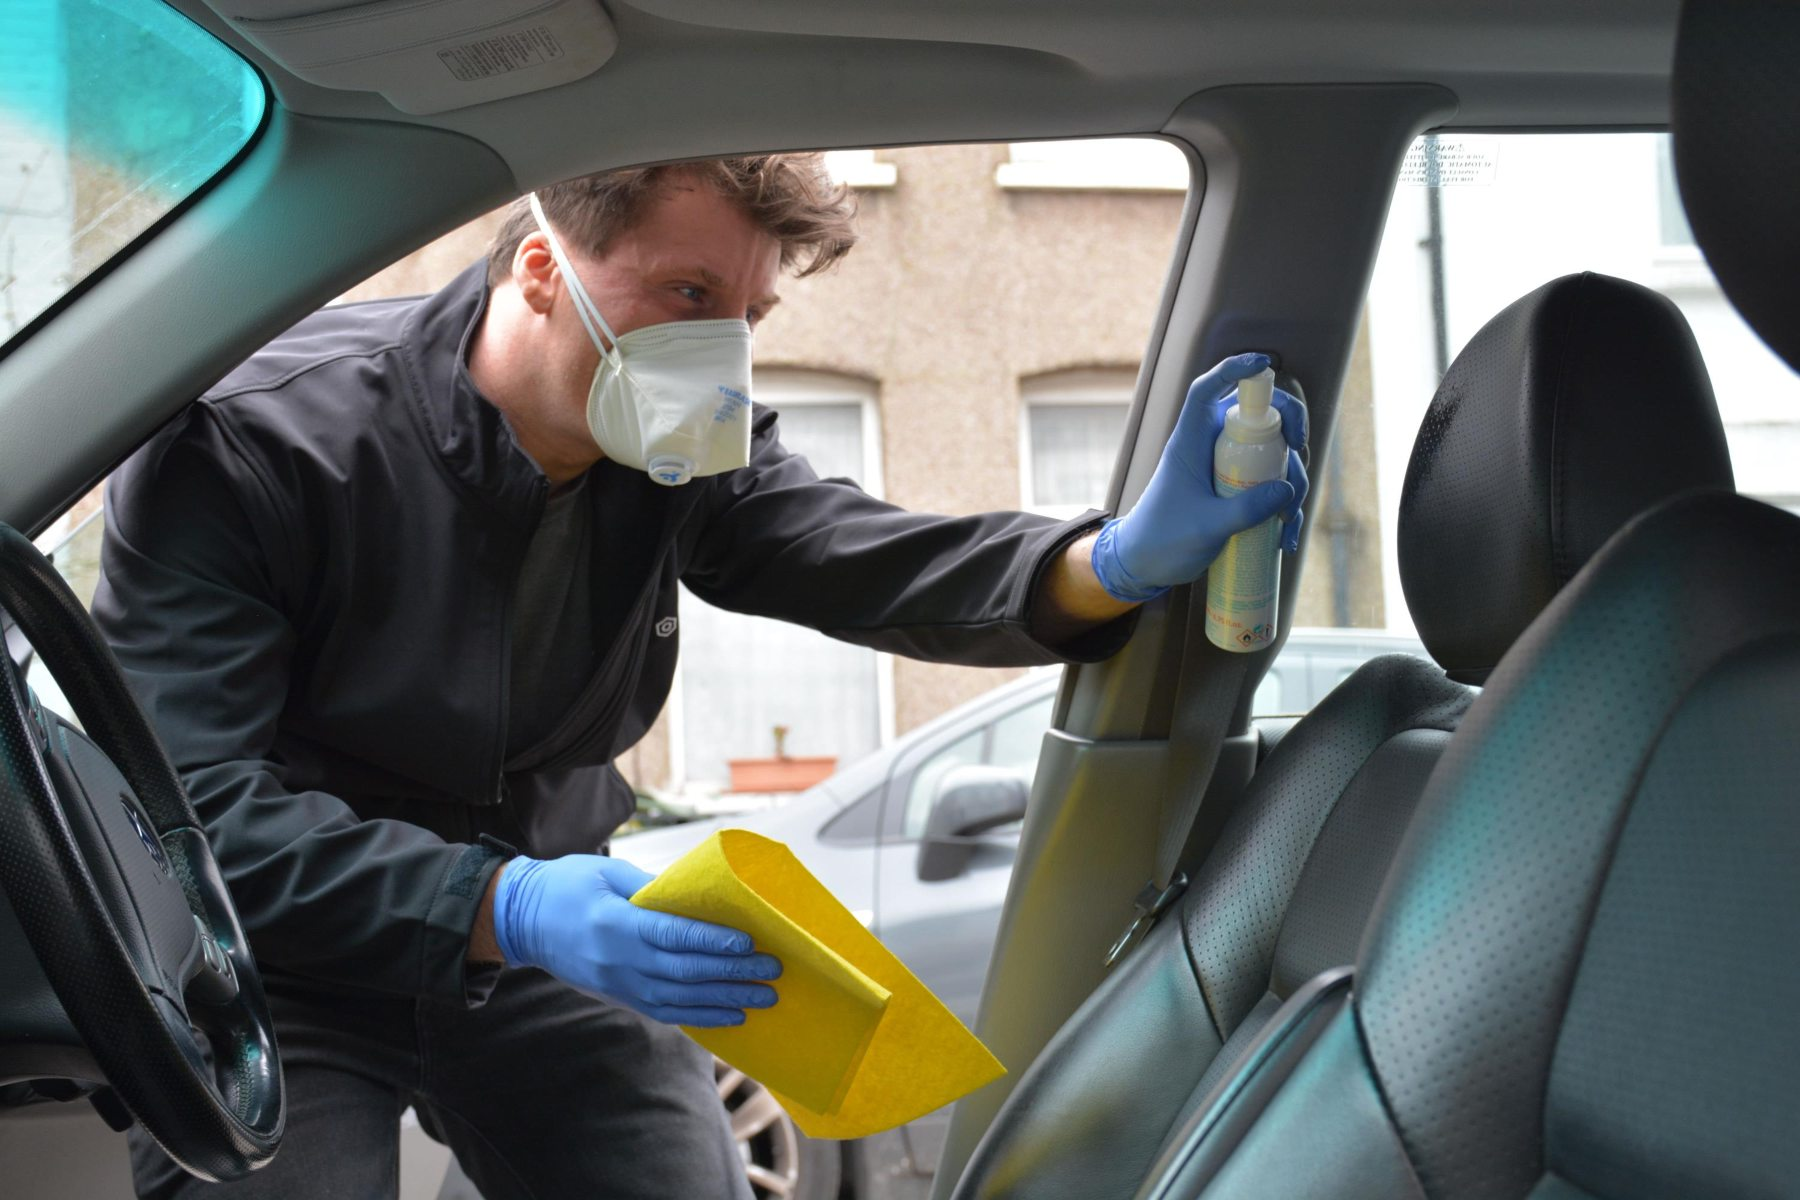 Tips on keeping your car hygenic during lockdown